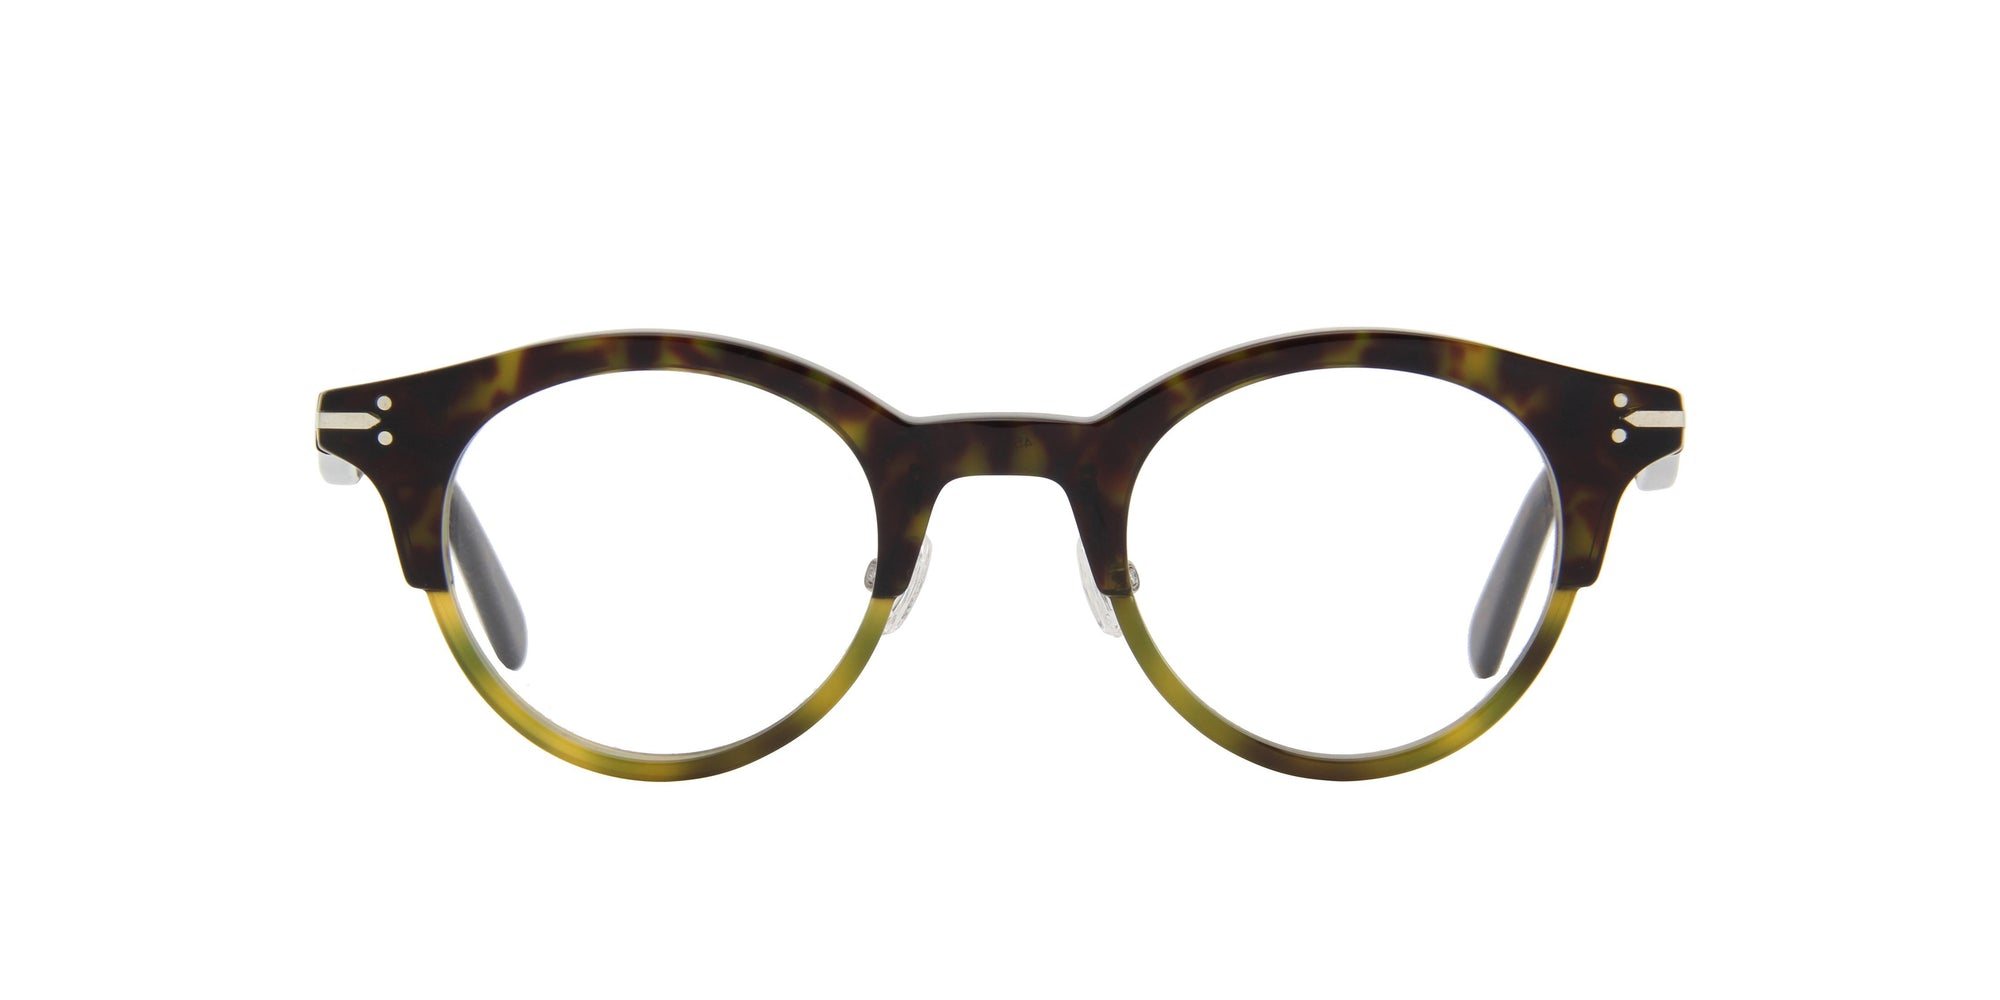 Celine - CL41421 Tortoise Oval Women Eyeglasses - 45mm-Eyeglasses-Designer Eyes